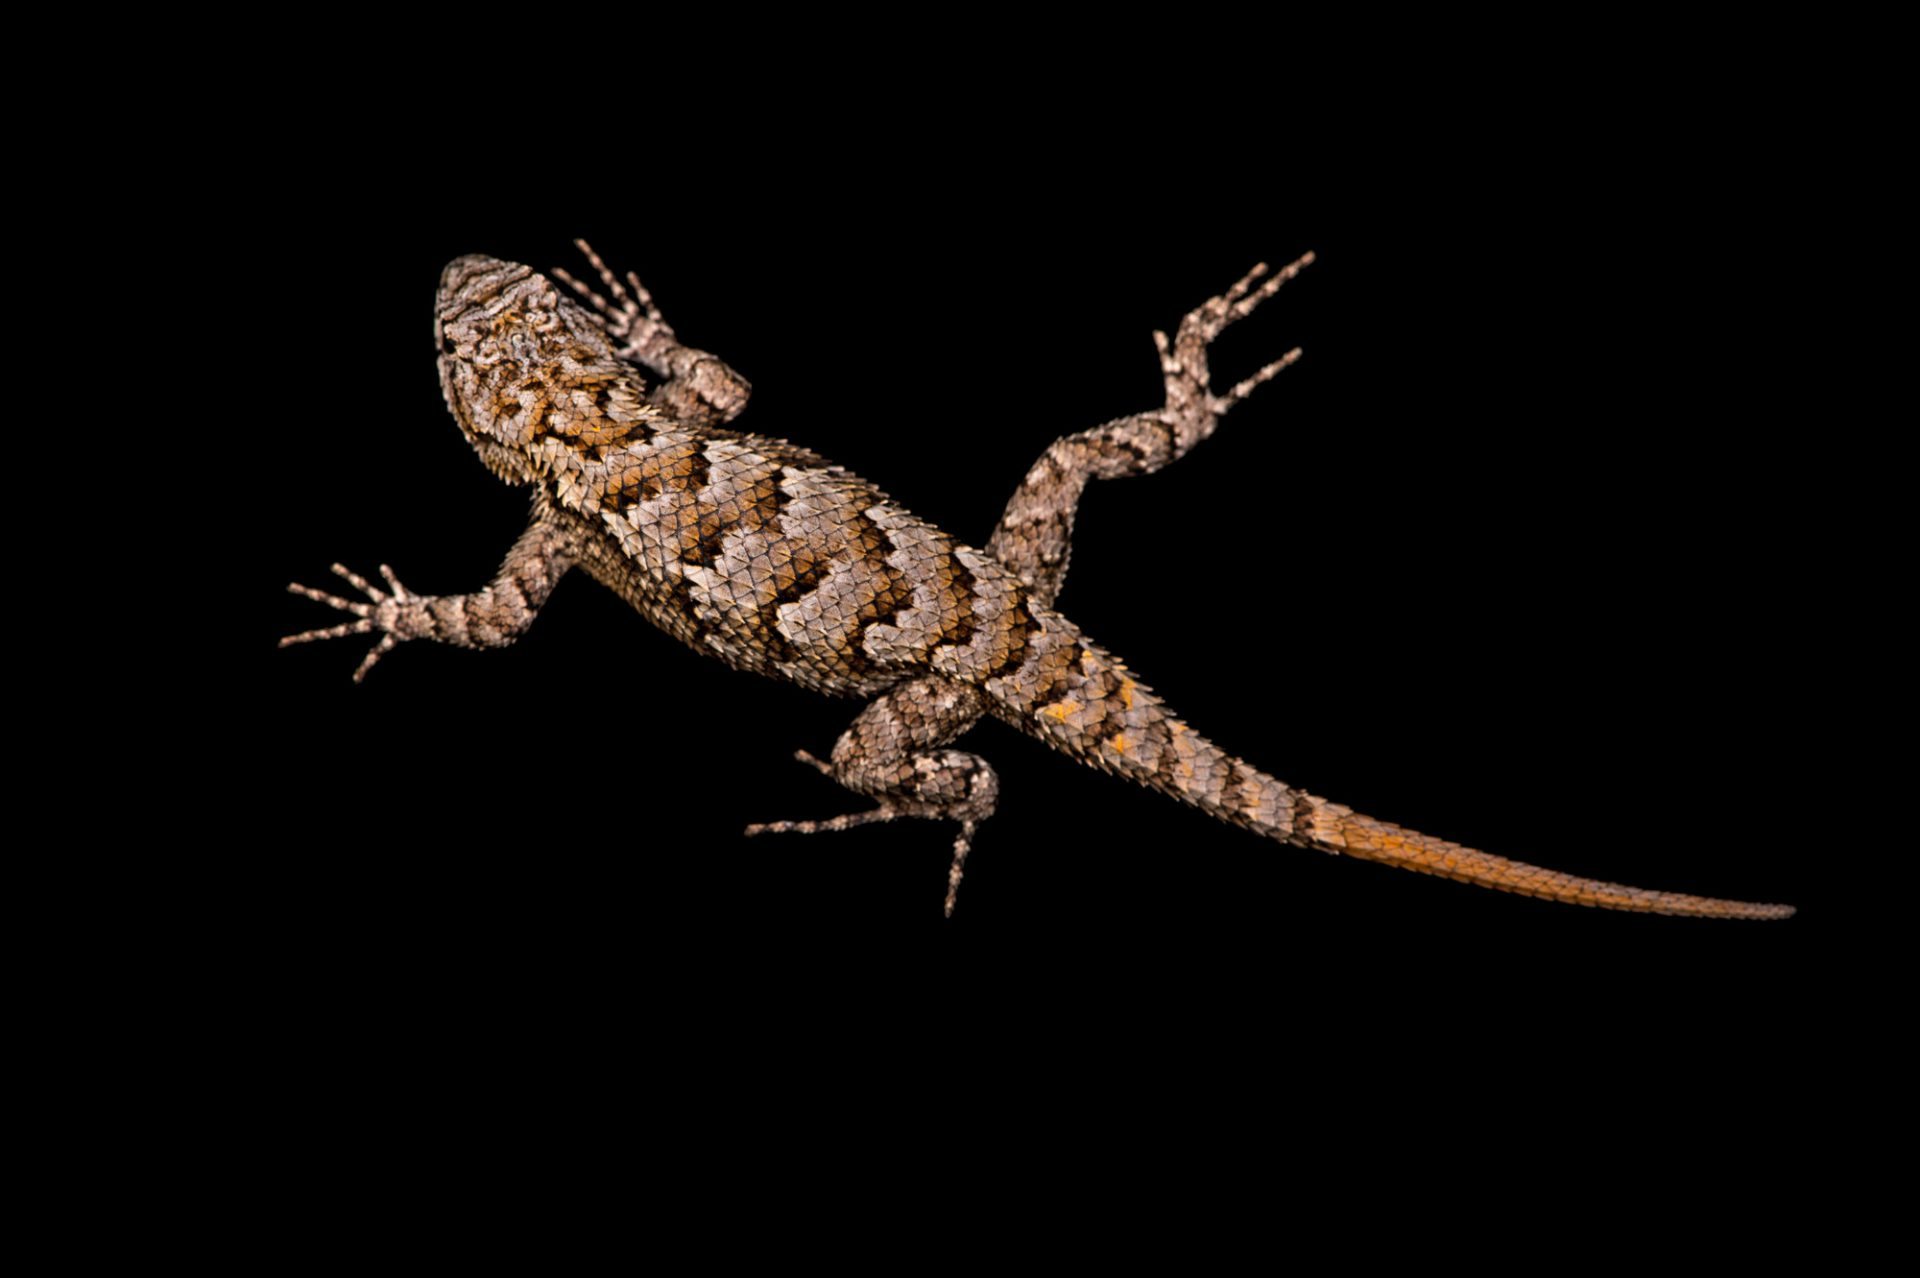 Picture of an Eastern fence lizard (Sceloporus undulatus) at the Lowry Park Zoo in Tampa, FL.